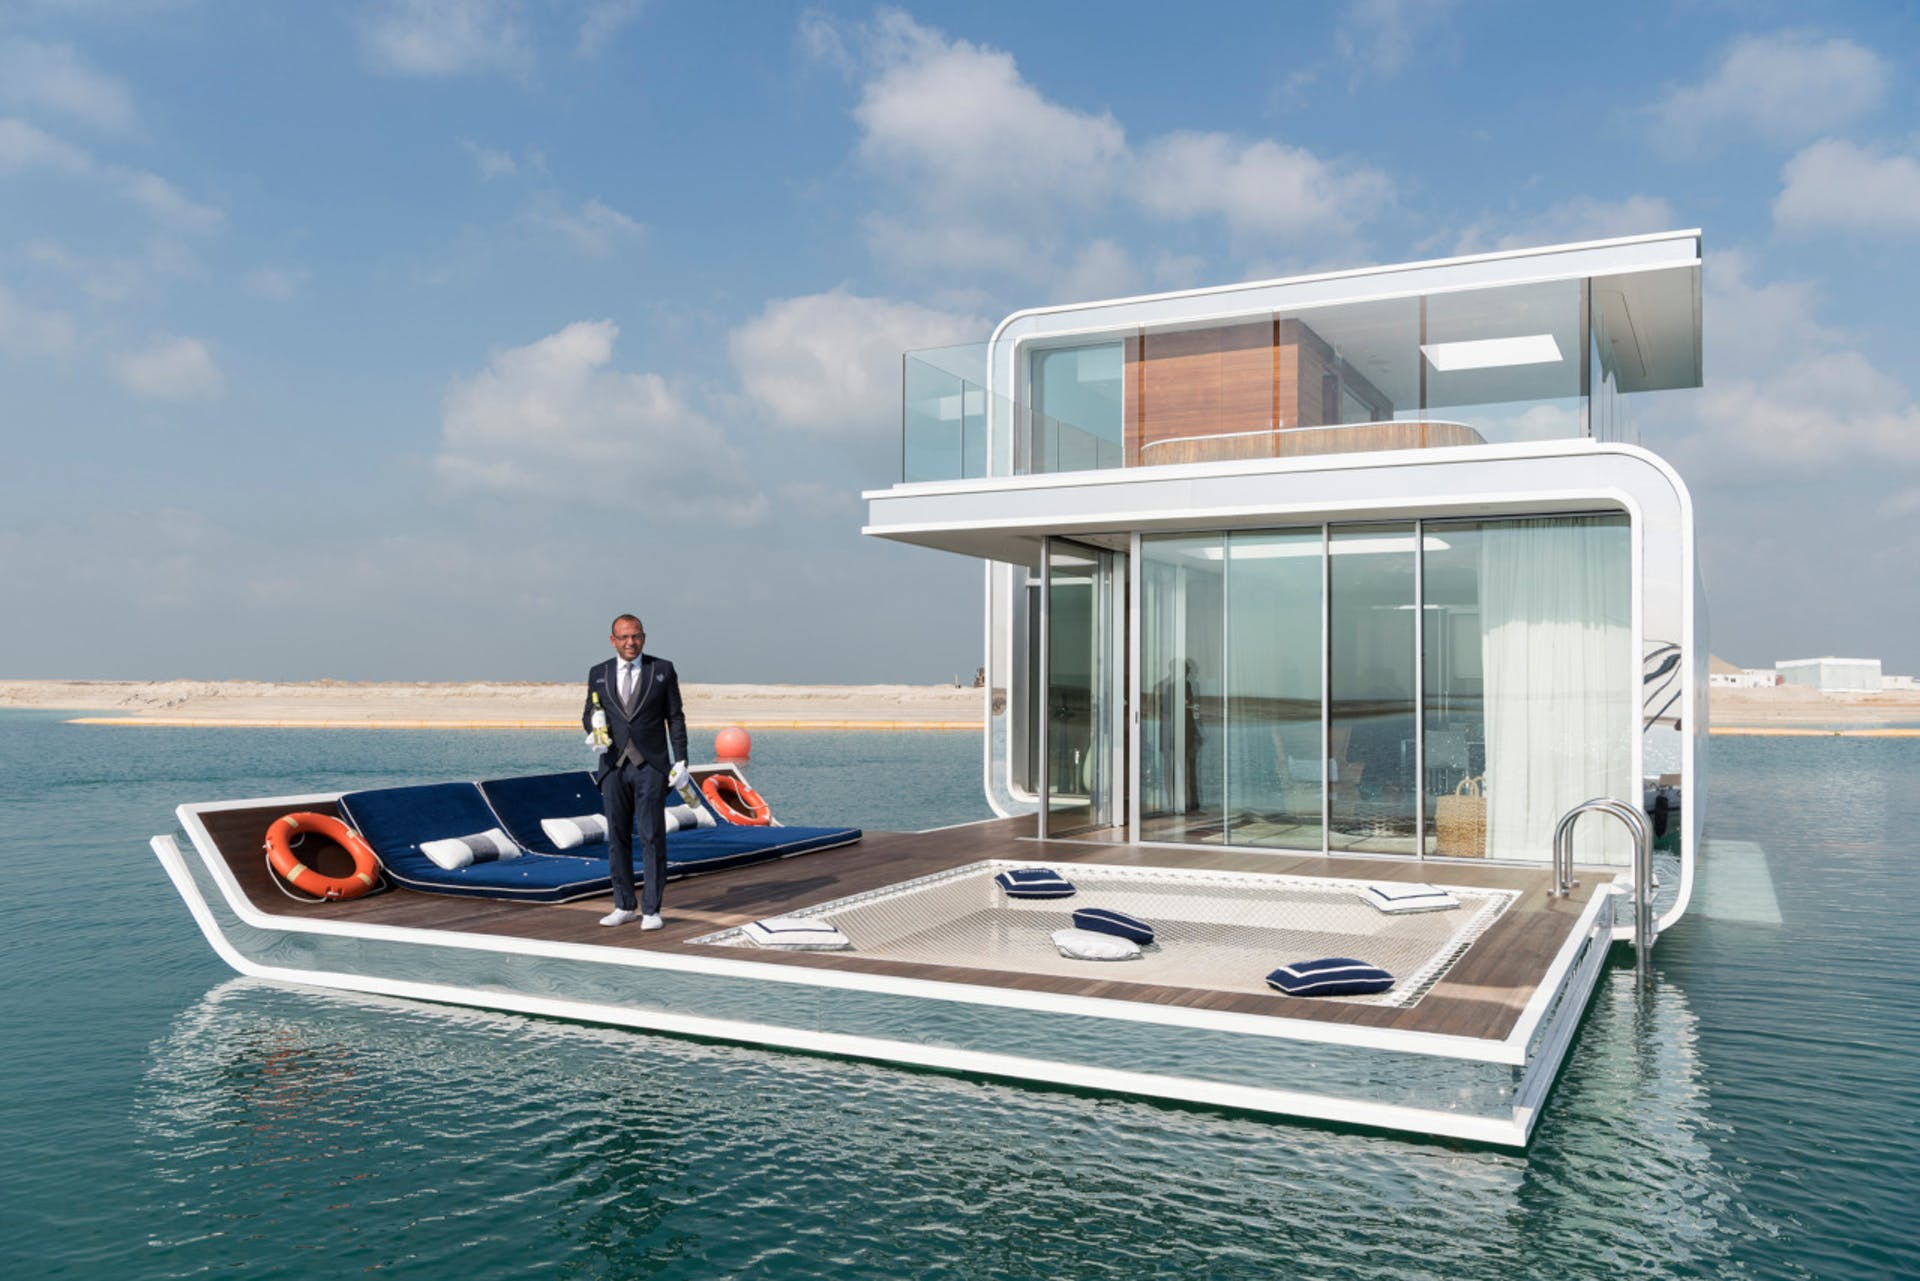 floating house and man